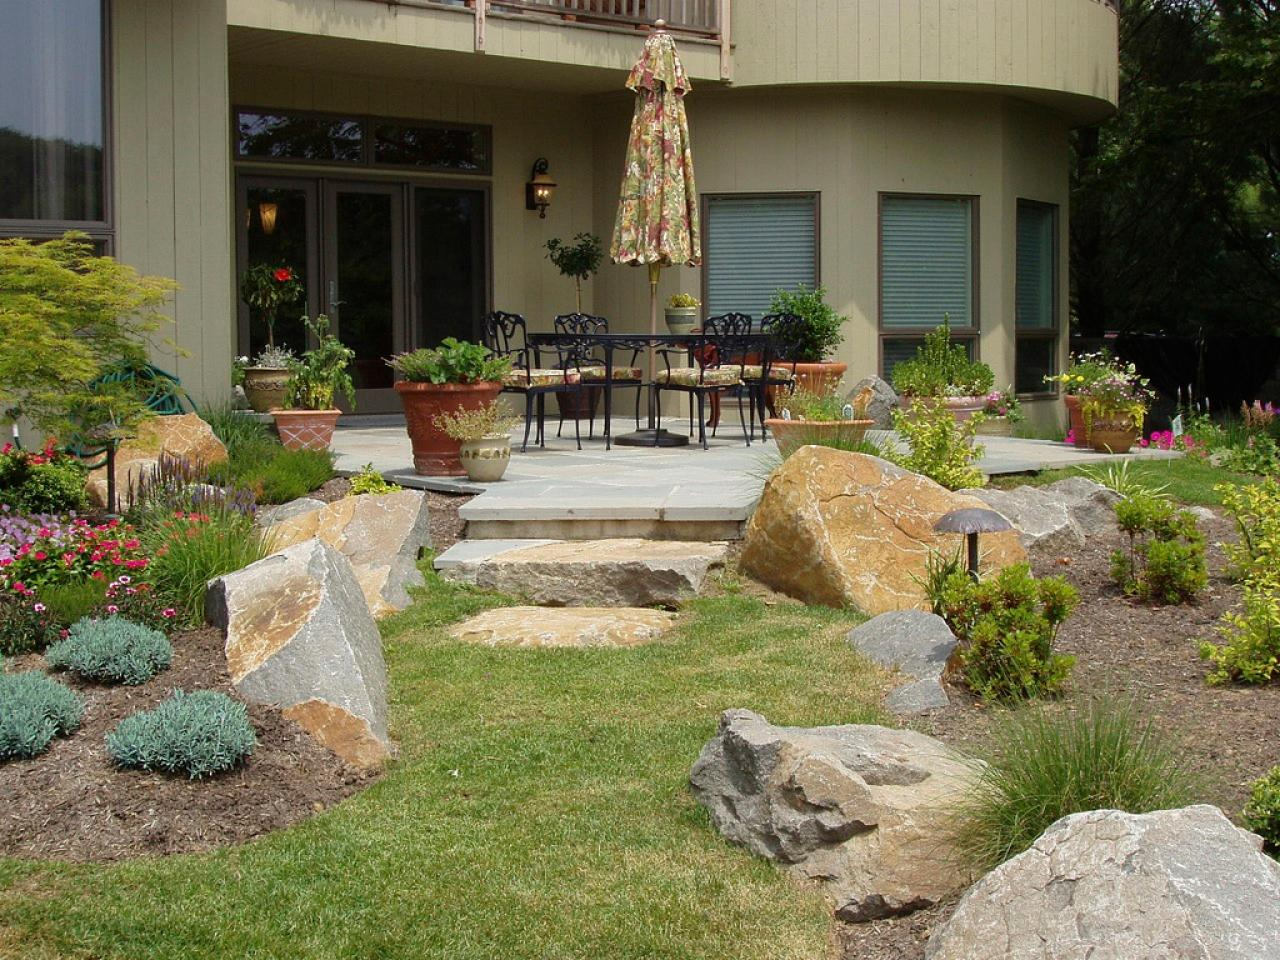 Patio landscaping ideas hgtv for Patio landscaping